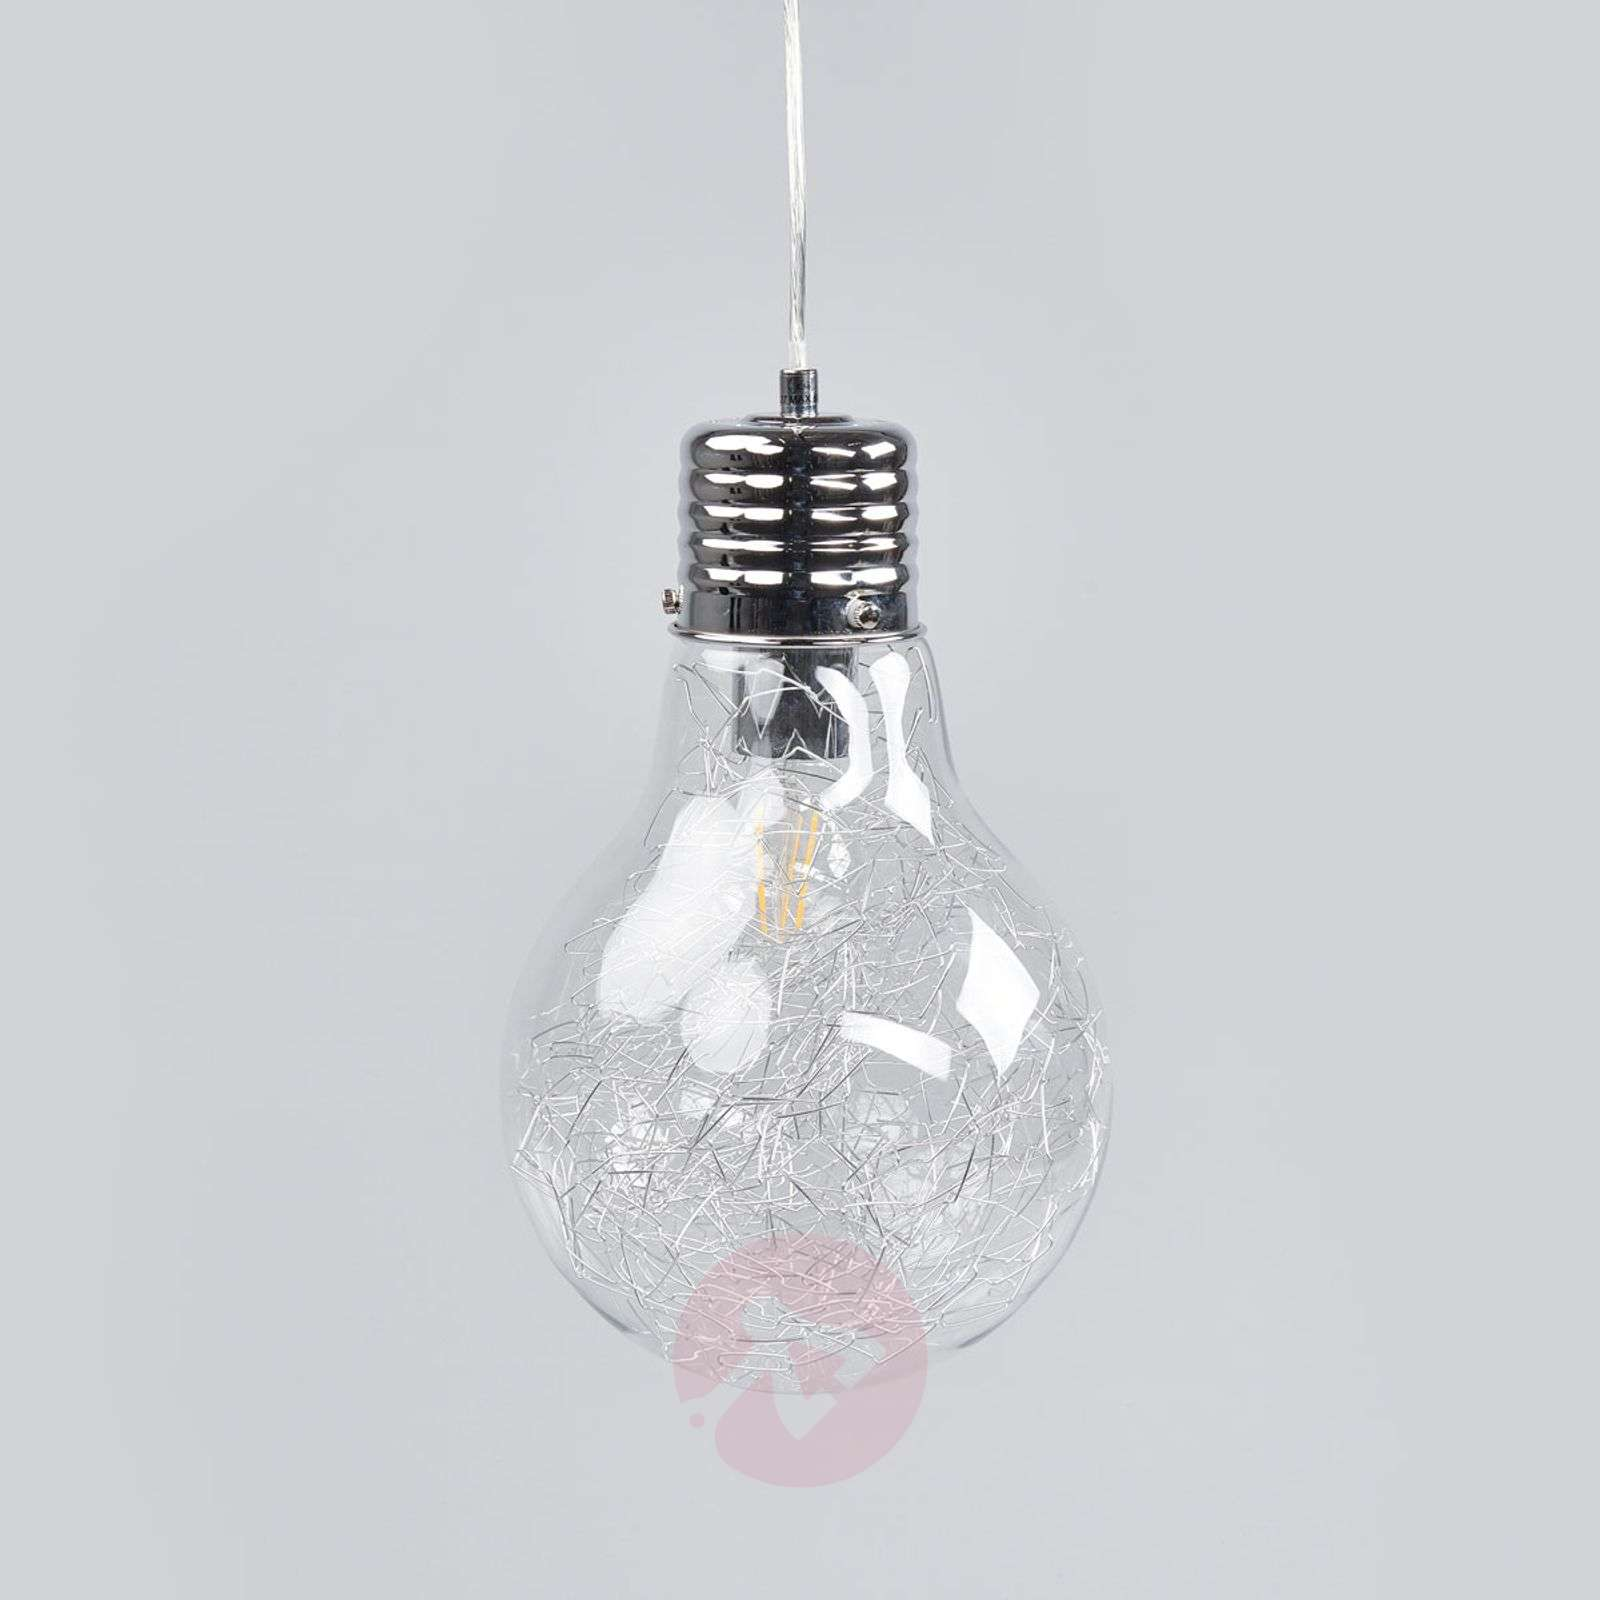 lamp cache naked light lighting and p benwirth contemporary en bulb modern pendant